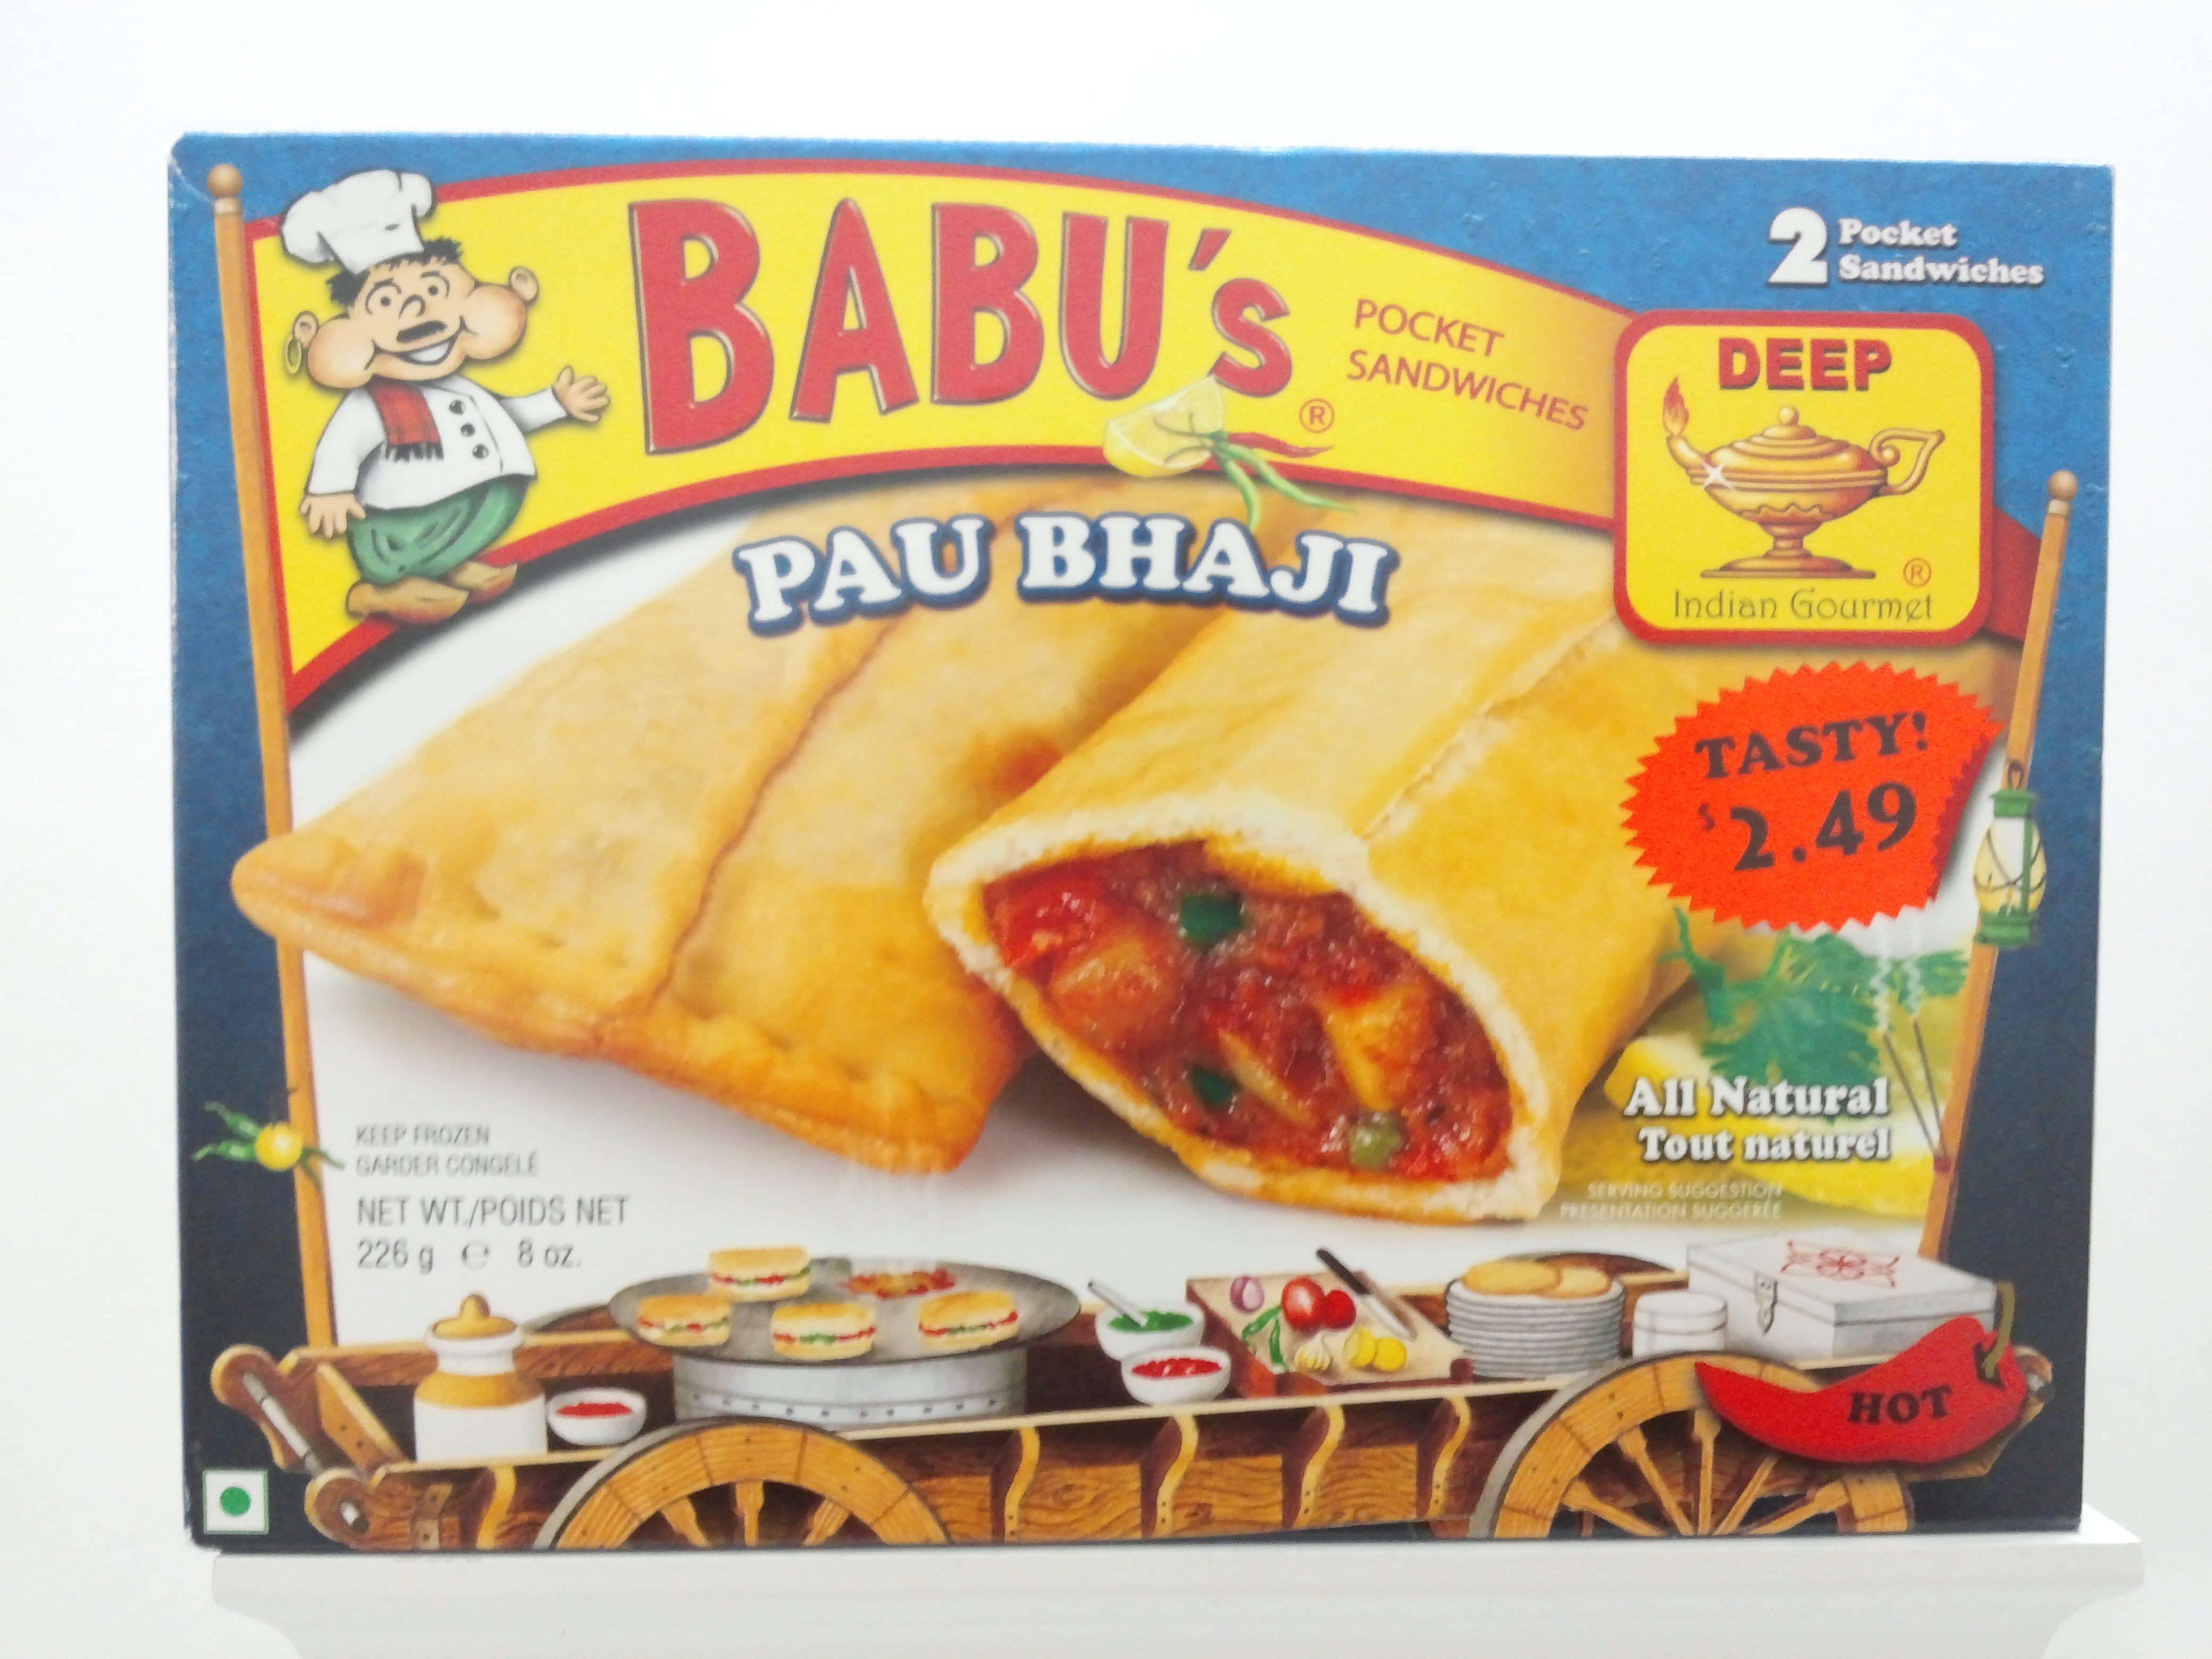 Babu's Pau Bhaji Pocket Sandwich 8 oz